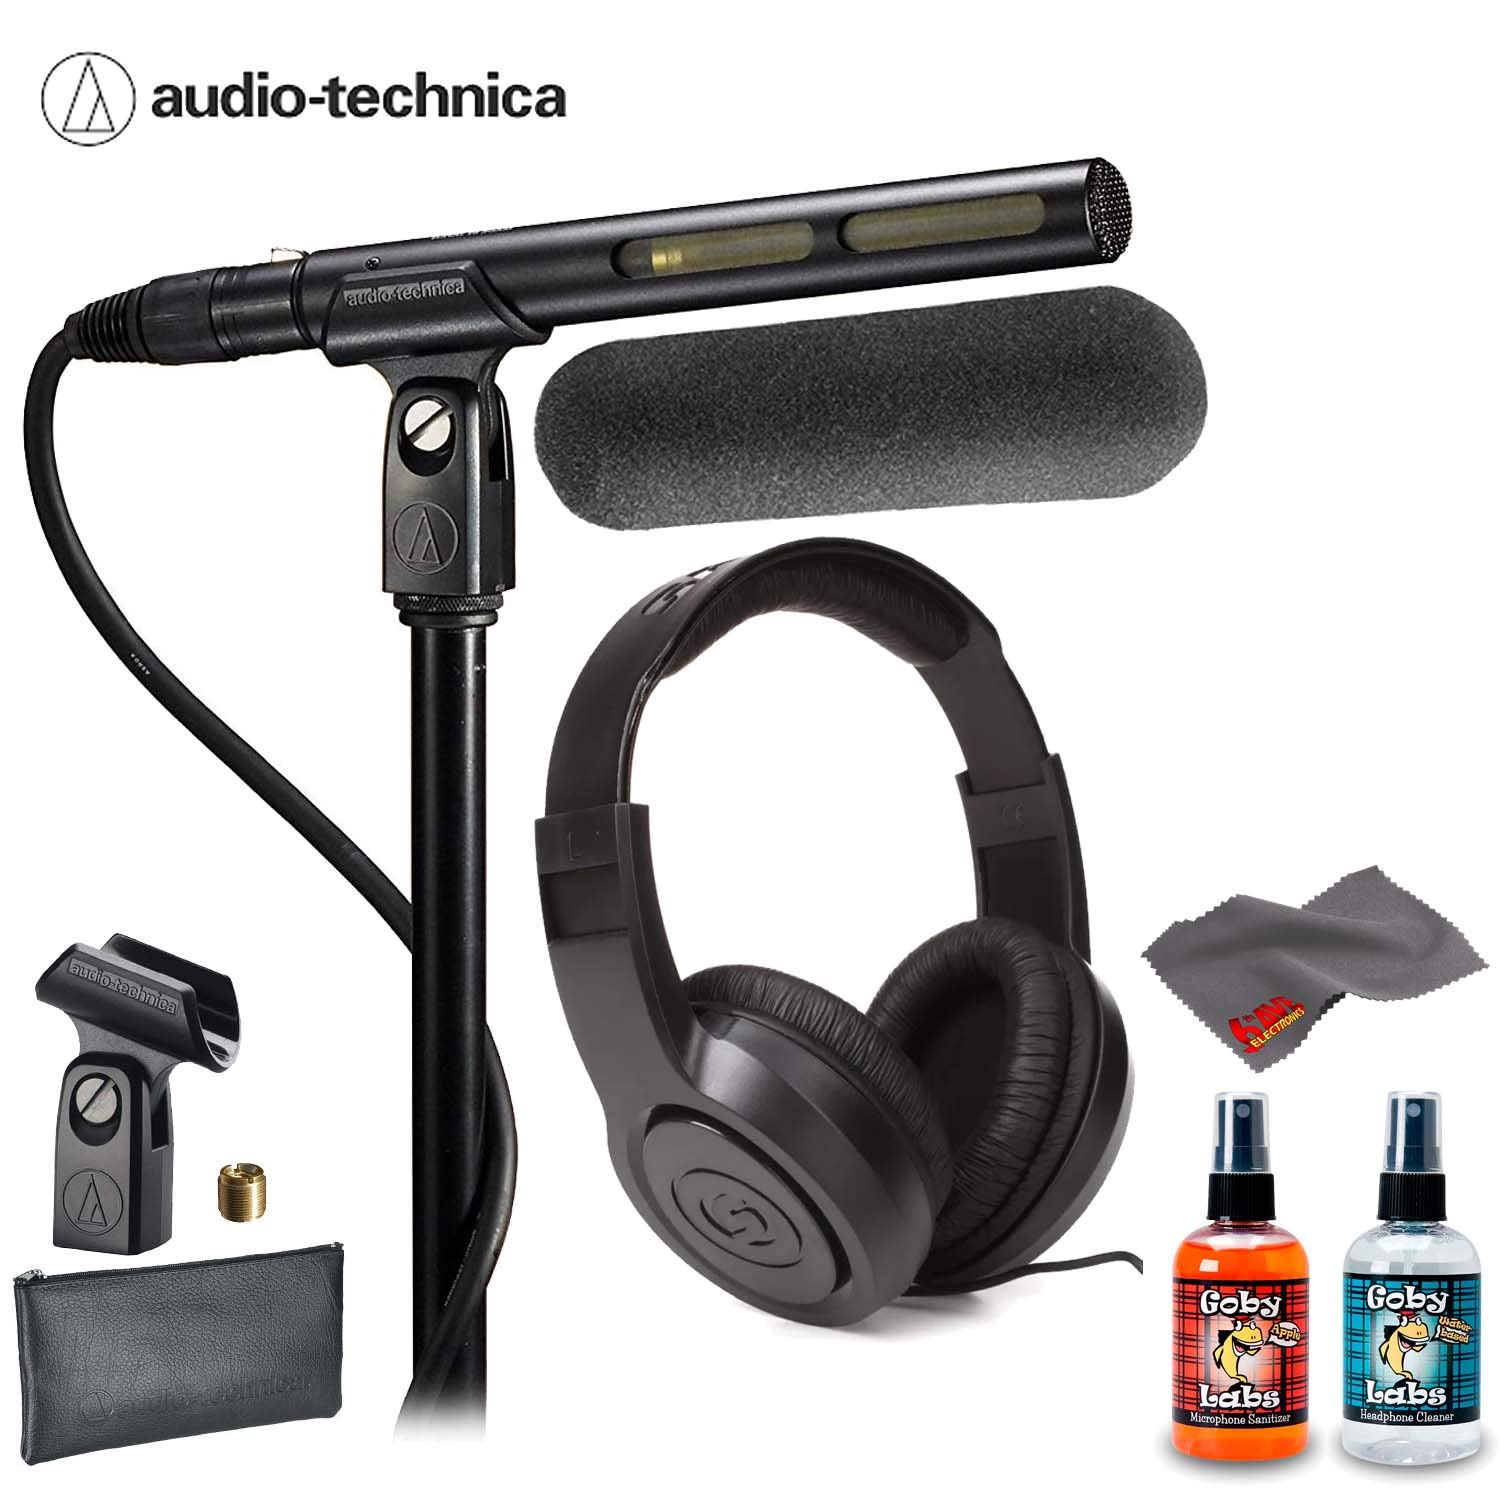 Audio-Technica AT875R Line and Gradient Condenser Microphone With Samson SR350, Windscreen, Protective Pouch AND 6Ave Cleaning Kit